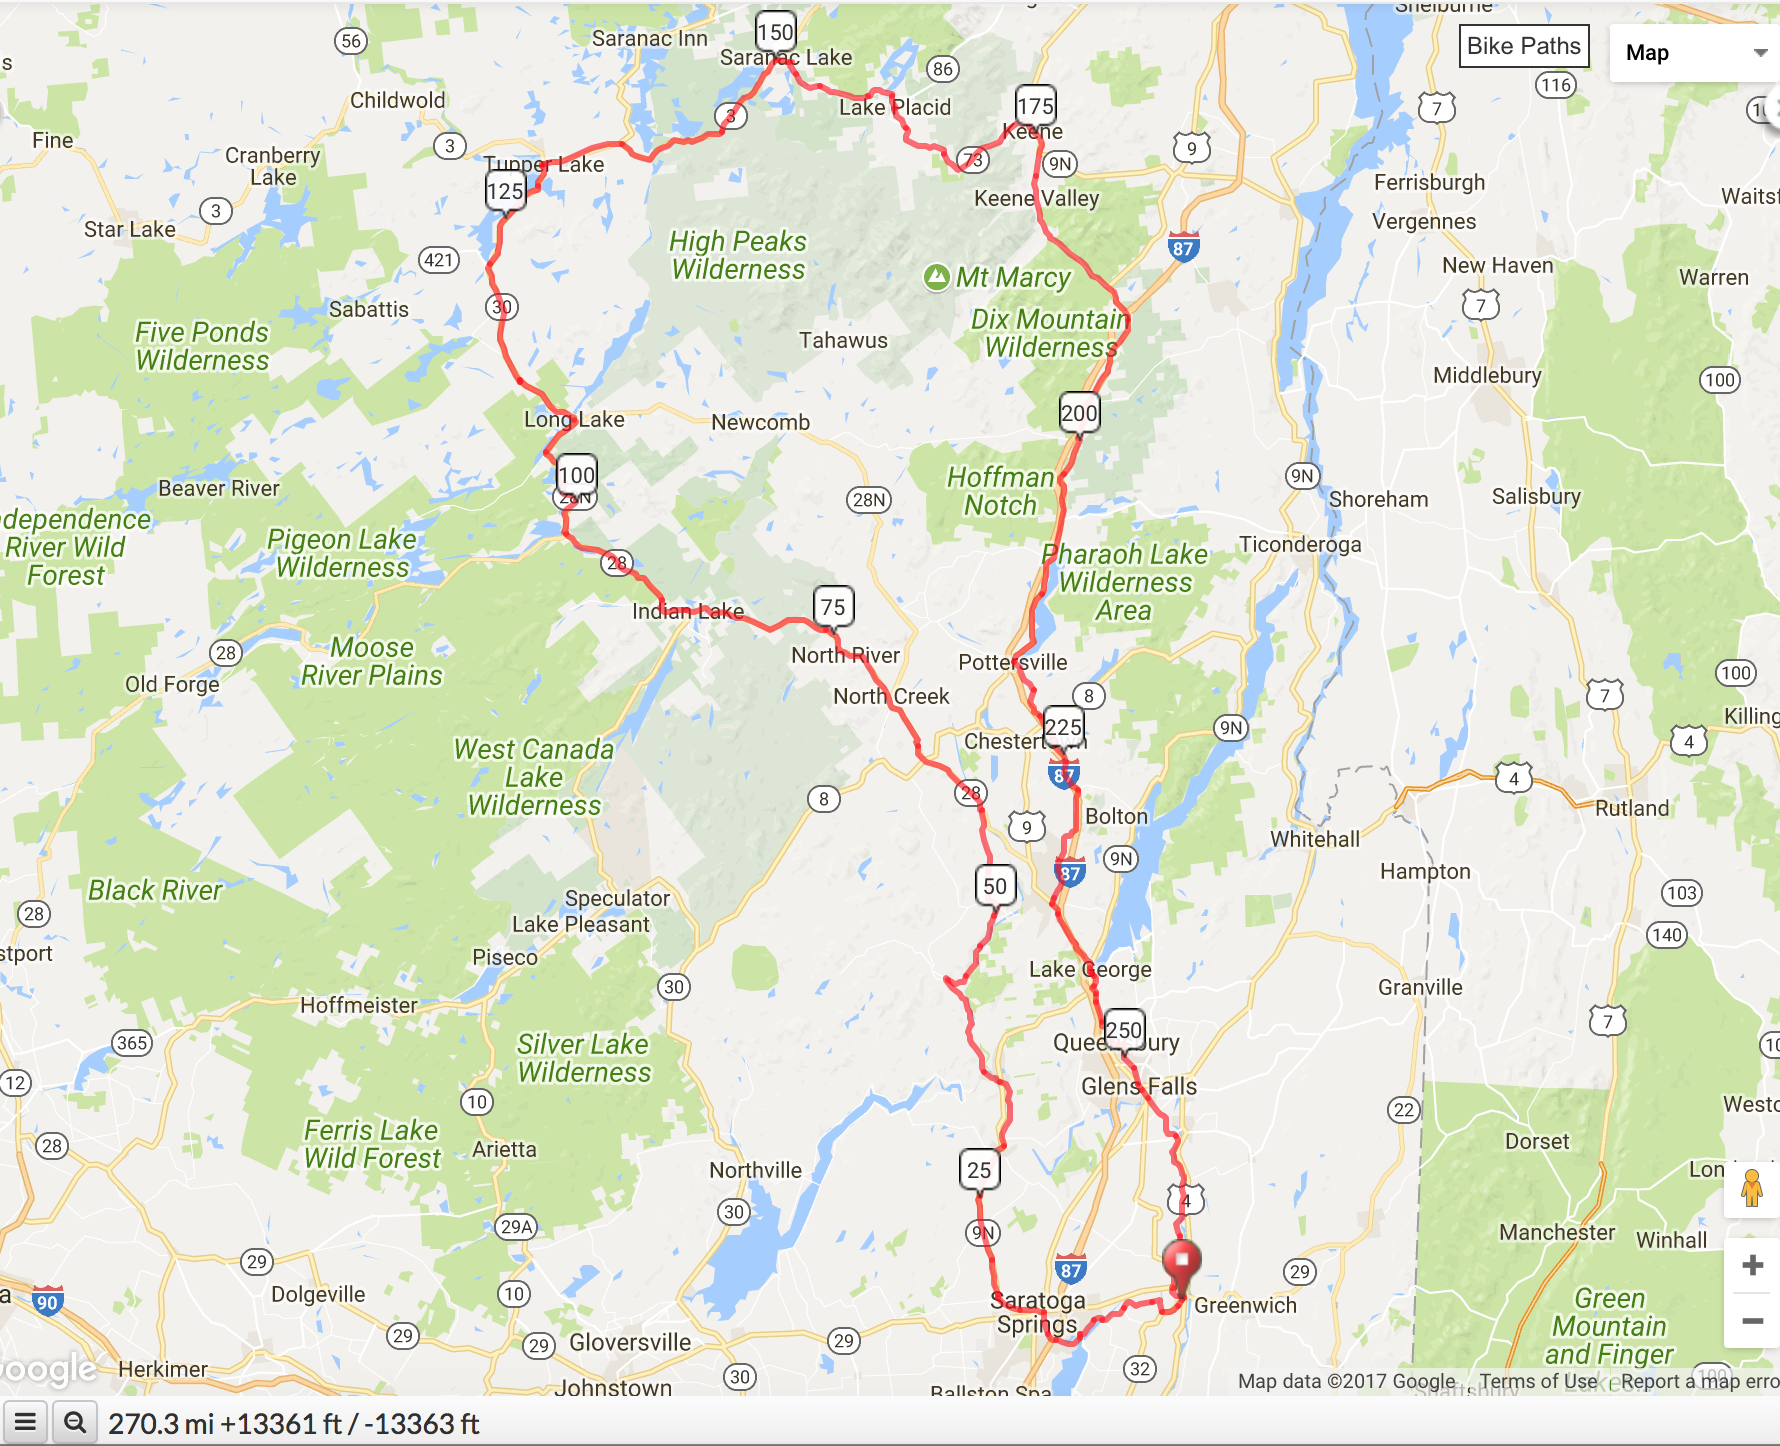 Adirondack Ultra Fondo Map is available on ridewithgps.com